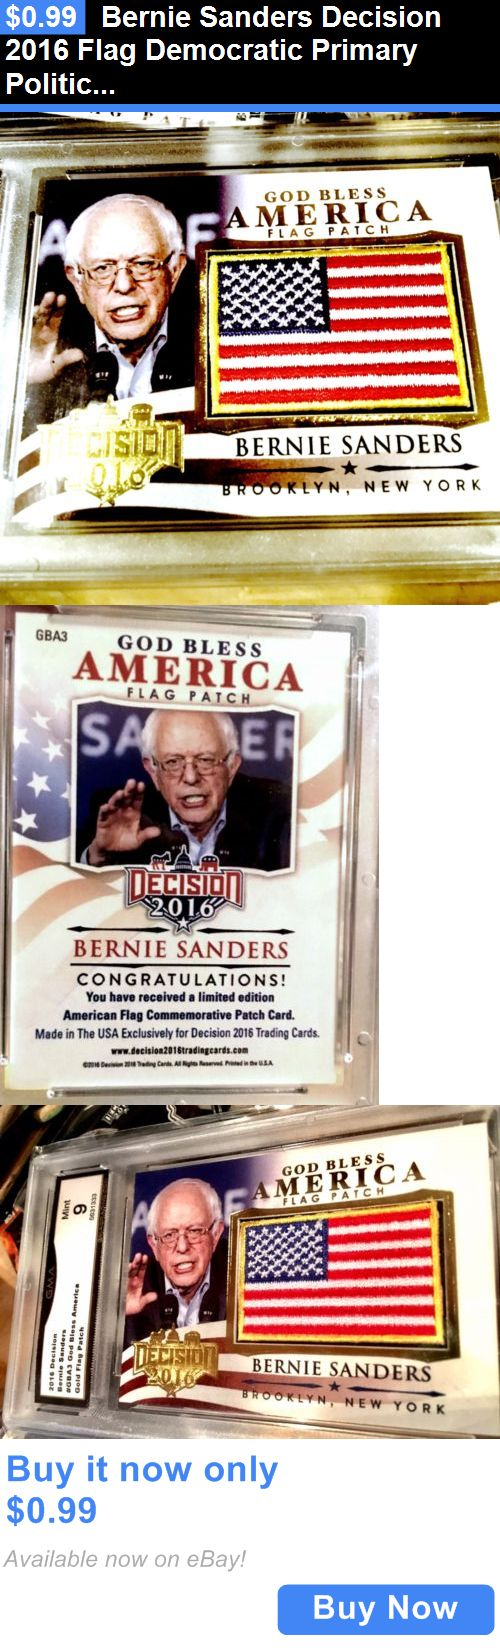 Bernie Sanders: Bernie Sanders Decision 2016 Flag Democratic Primary Political Gba BUY IT NOW ONLY: $0.99